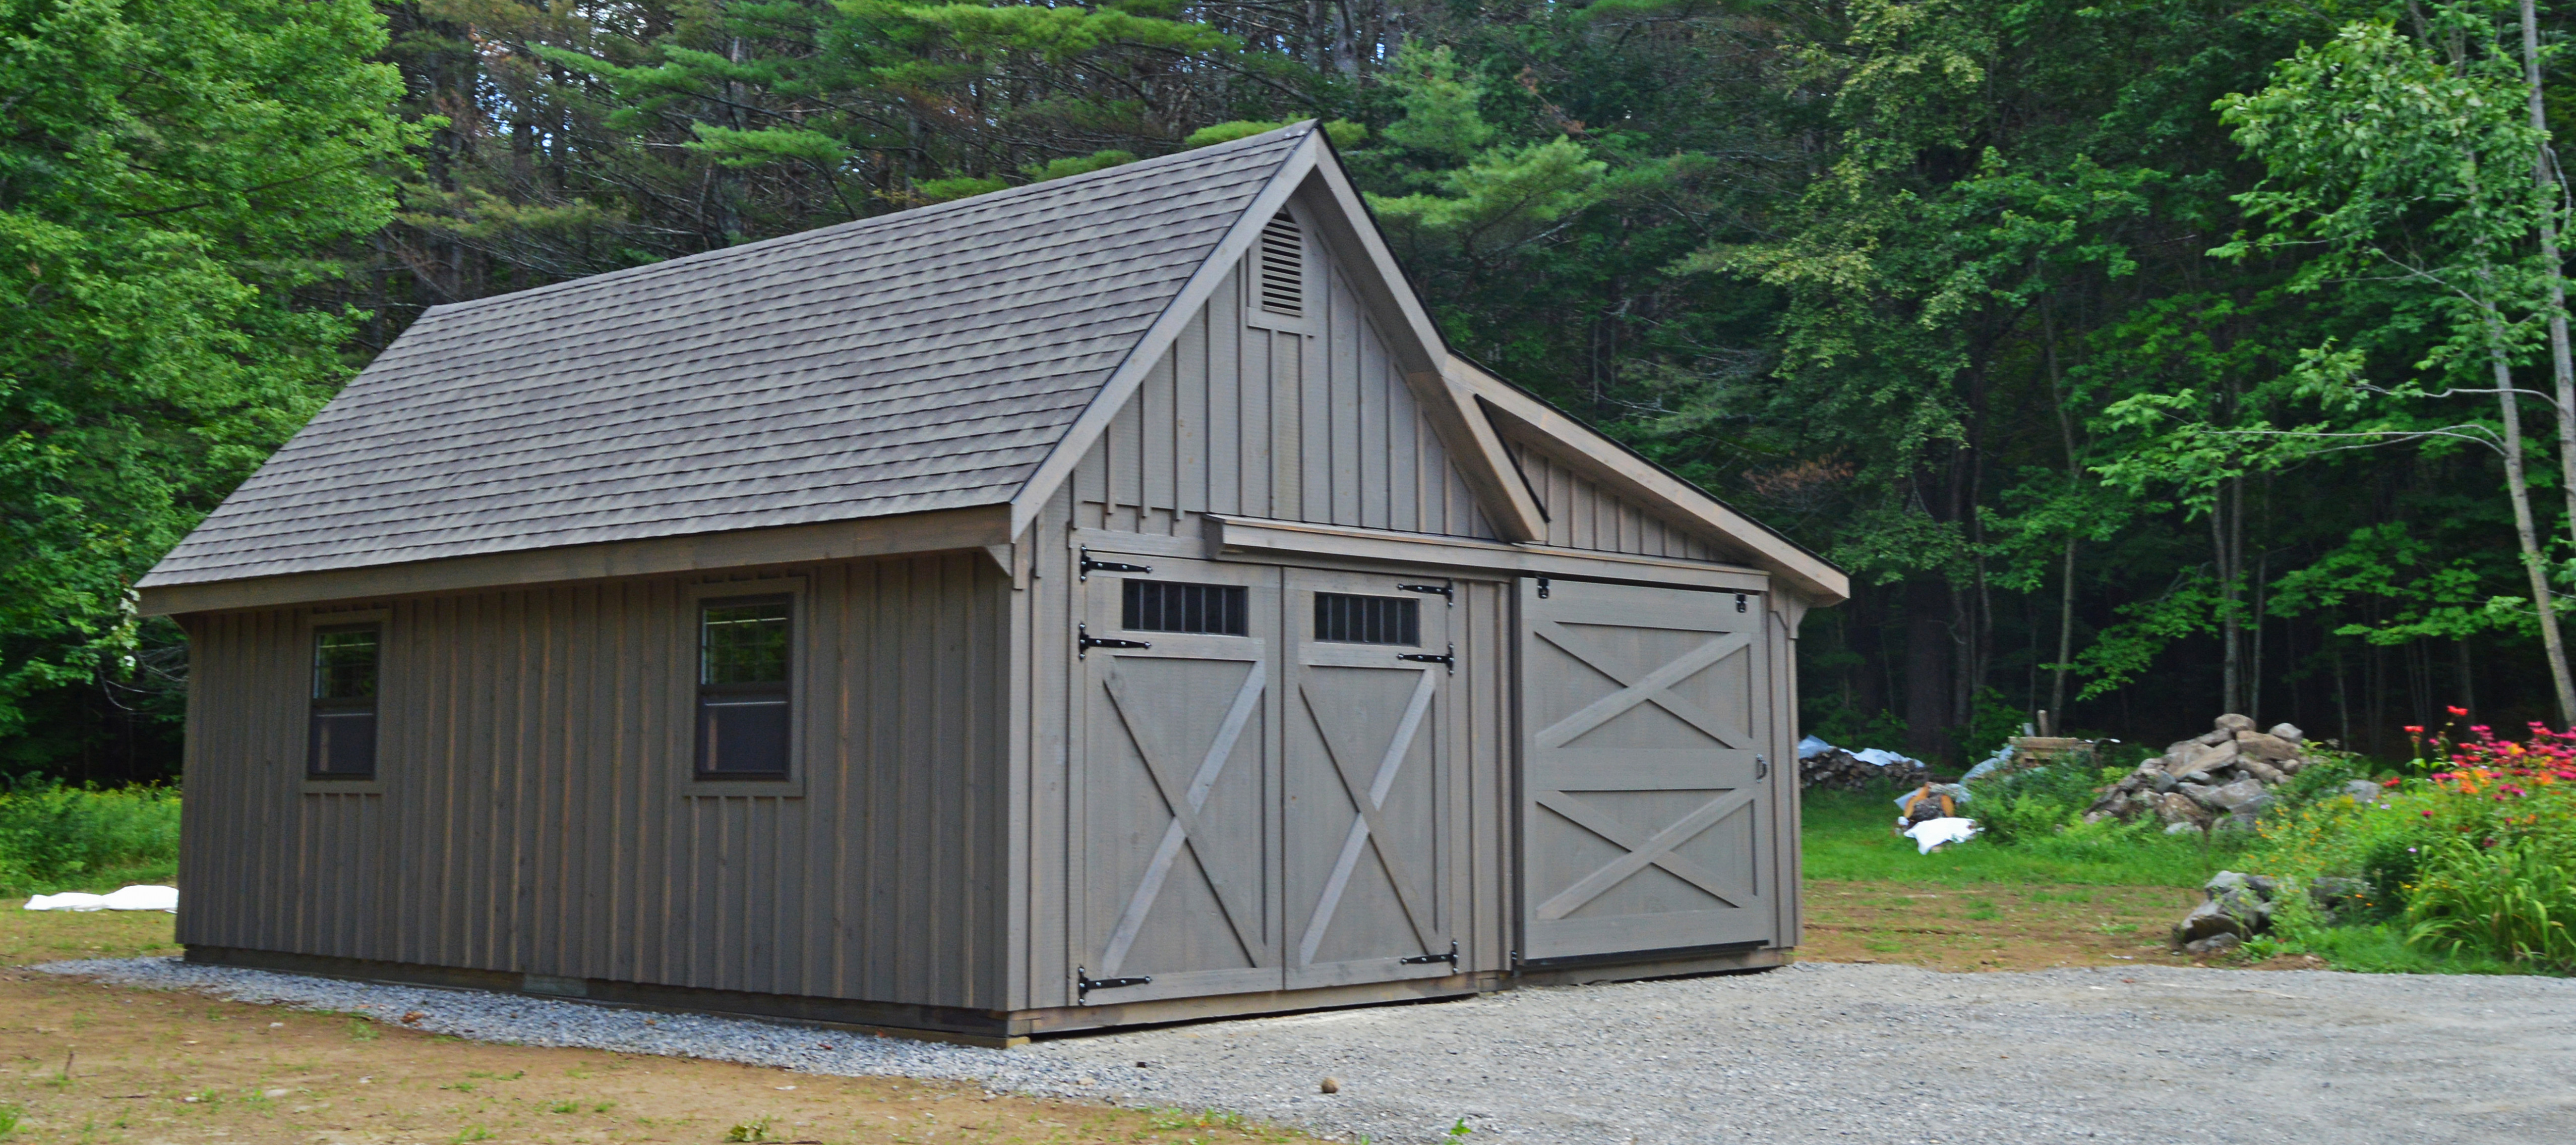 White River Garages Custom Barns And Buildings The ..